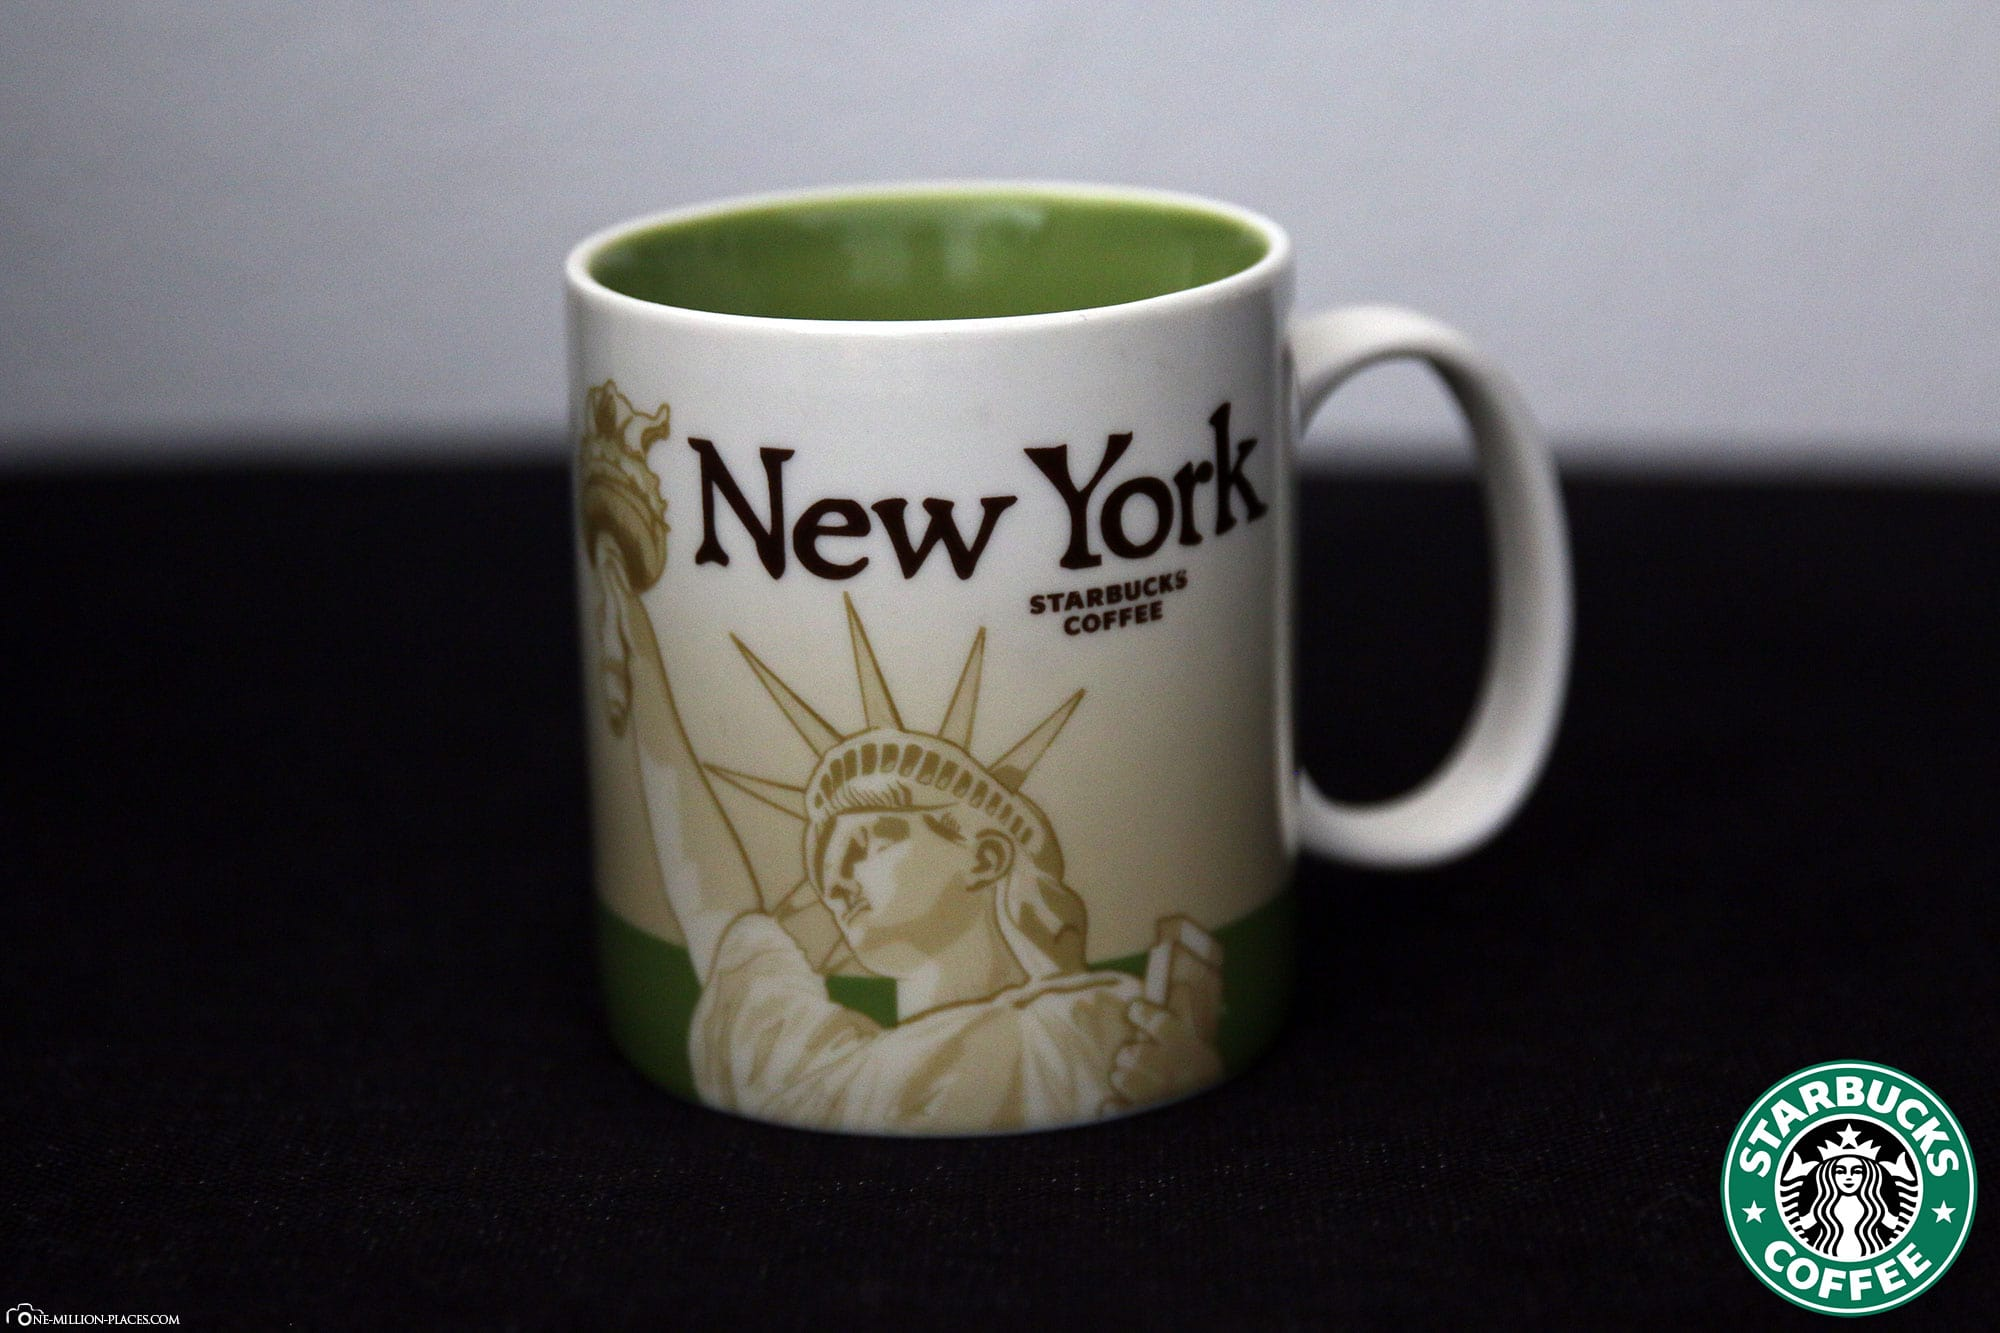 New York, Starbucks Tasse, Global Icon Serie, City Mugs, Sammlung, USA, Reisebericht